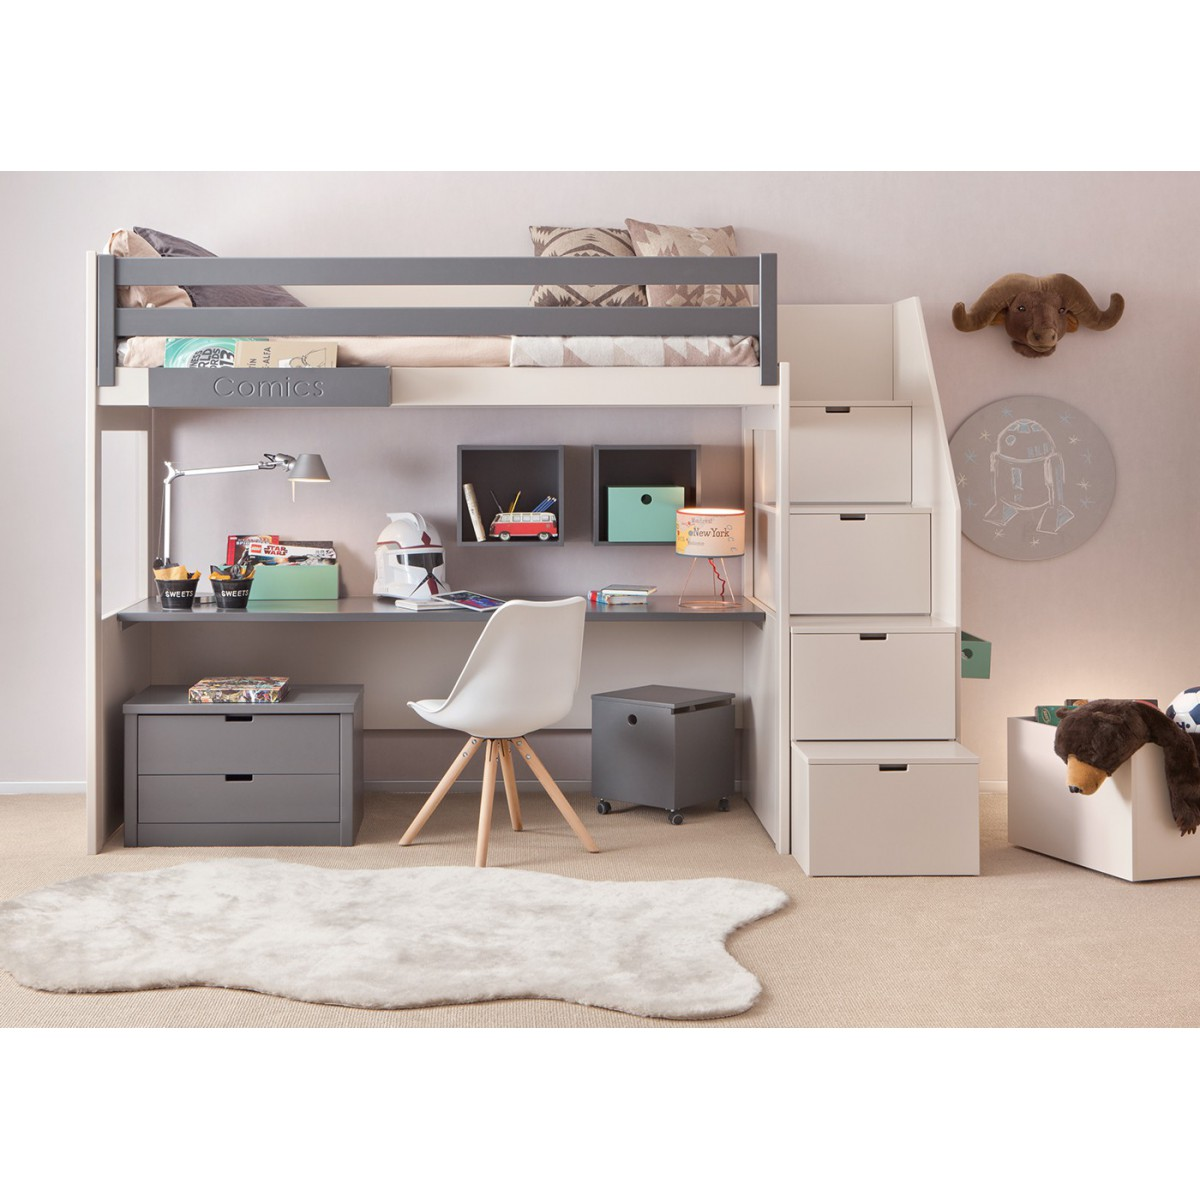 Chambre design sp cial ados juniors sign - Lit et bureau ado ...